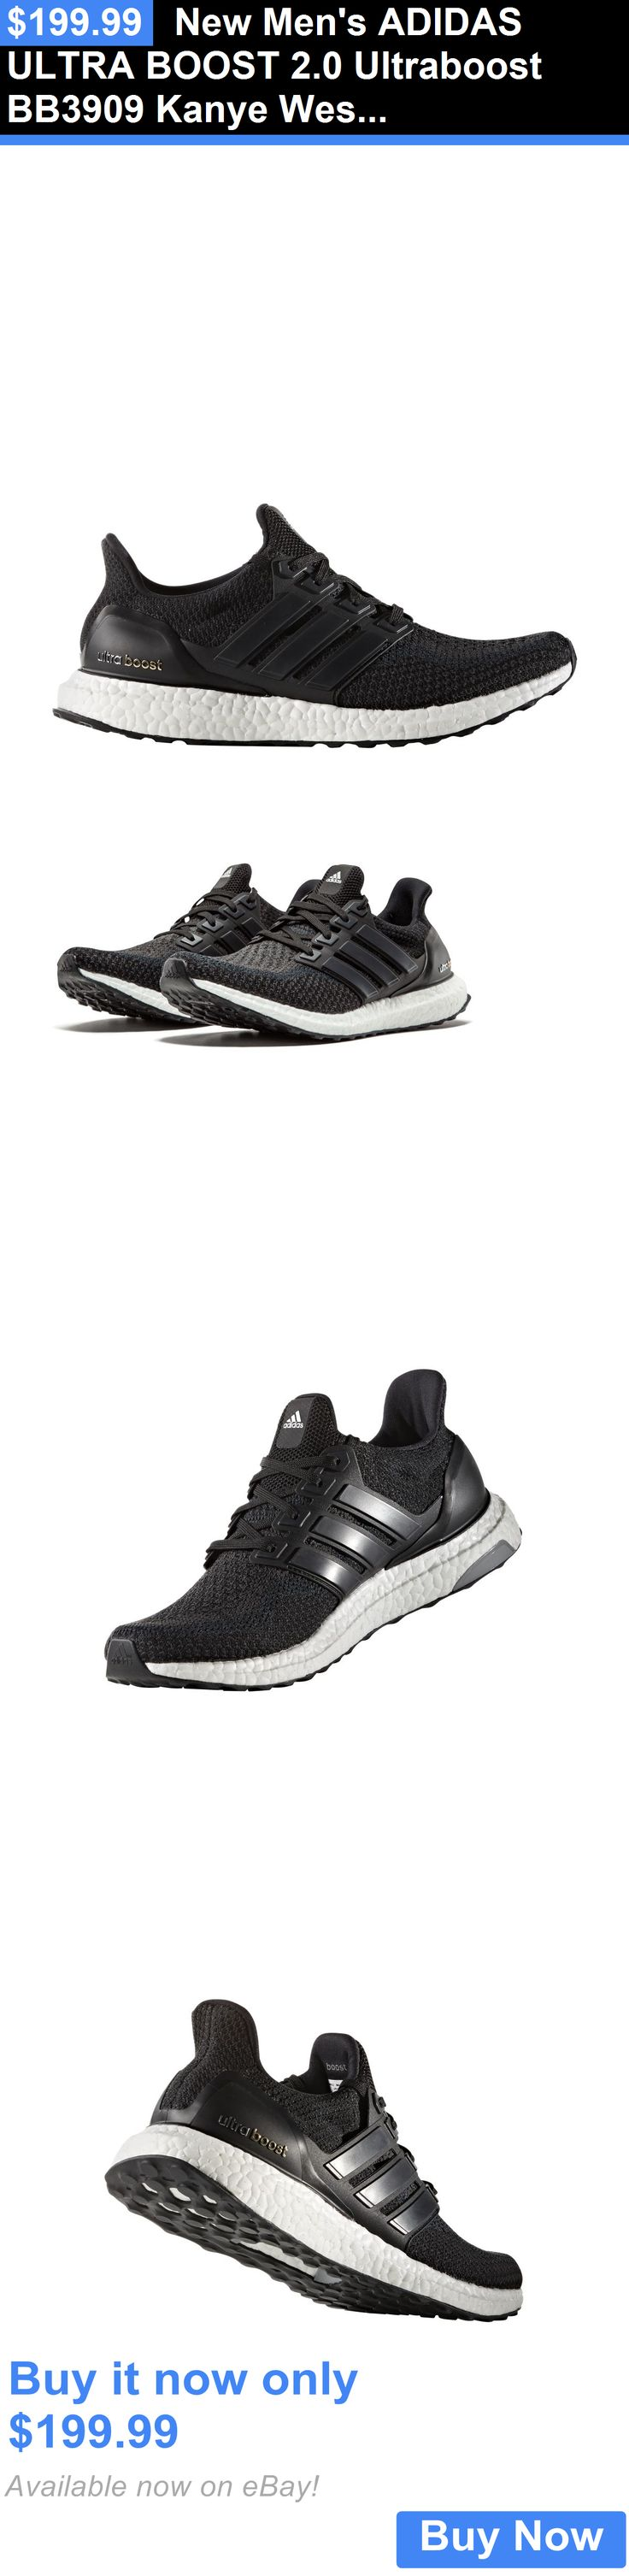 Men Shoes: New Mens Adidas Ultra Boost 2.0 Ultraboost Bb3909 Kanye West Running Sneaker BUY IT NOW ONLY: $199.99